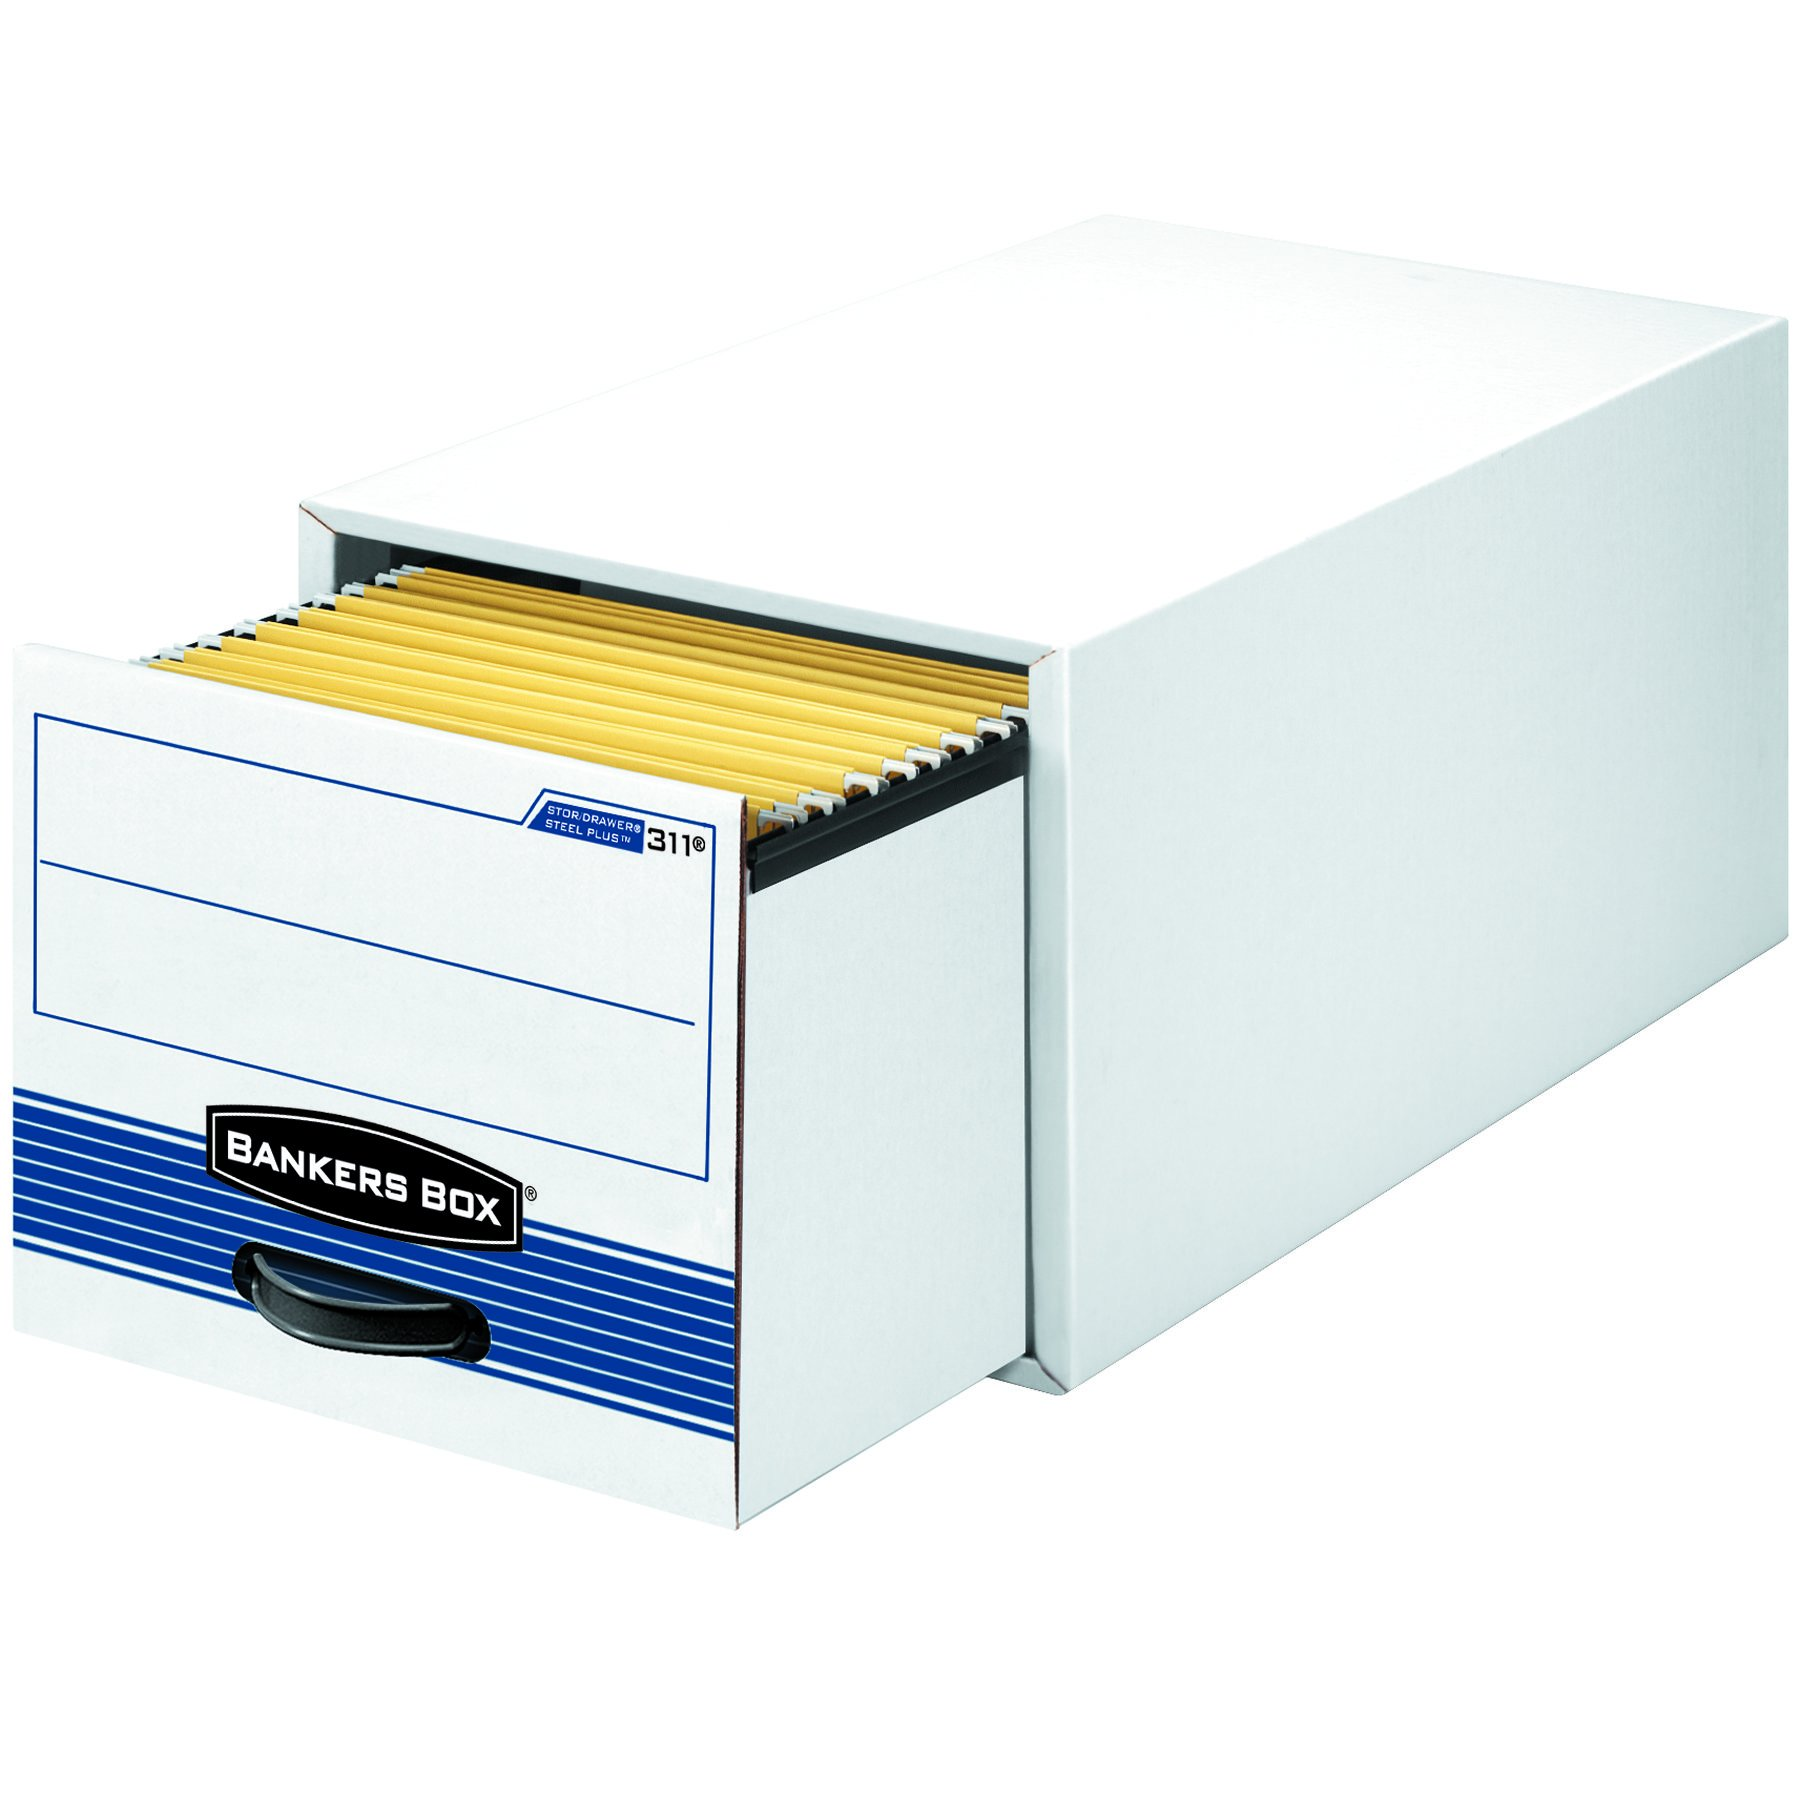 Bankers Box 00312 STOR/DRAWER Steel Plus Storage Box, Legal, White/Blue (Case of 6)